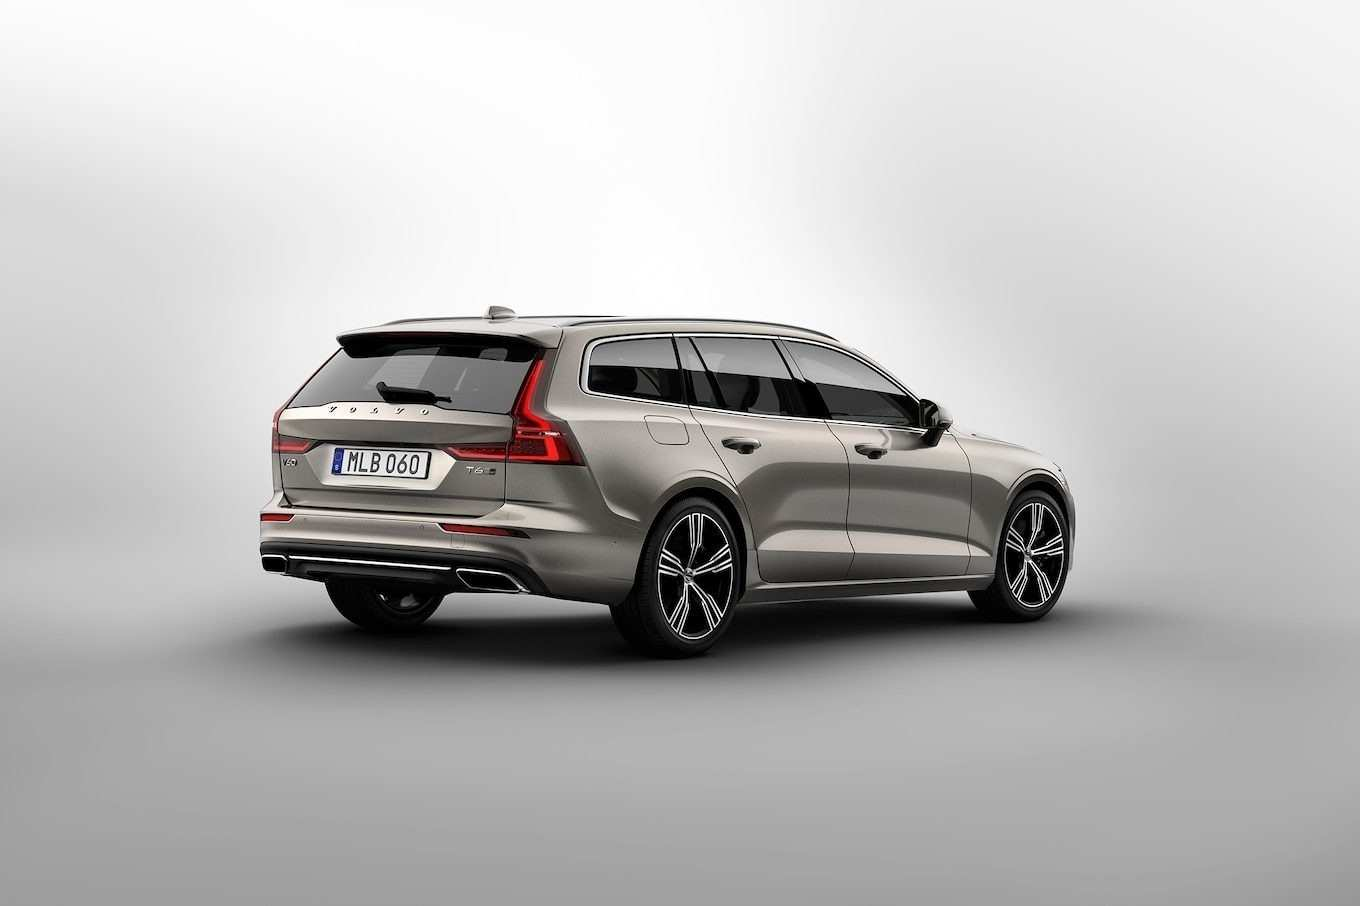 93 The Best 2019 Volvo Xc70 Wagon Price And Review